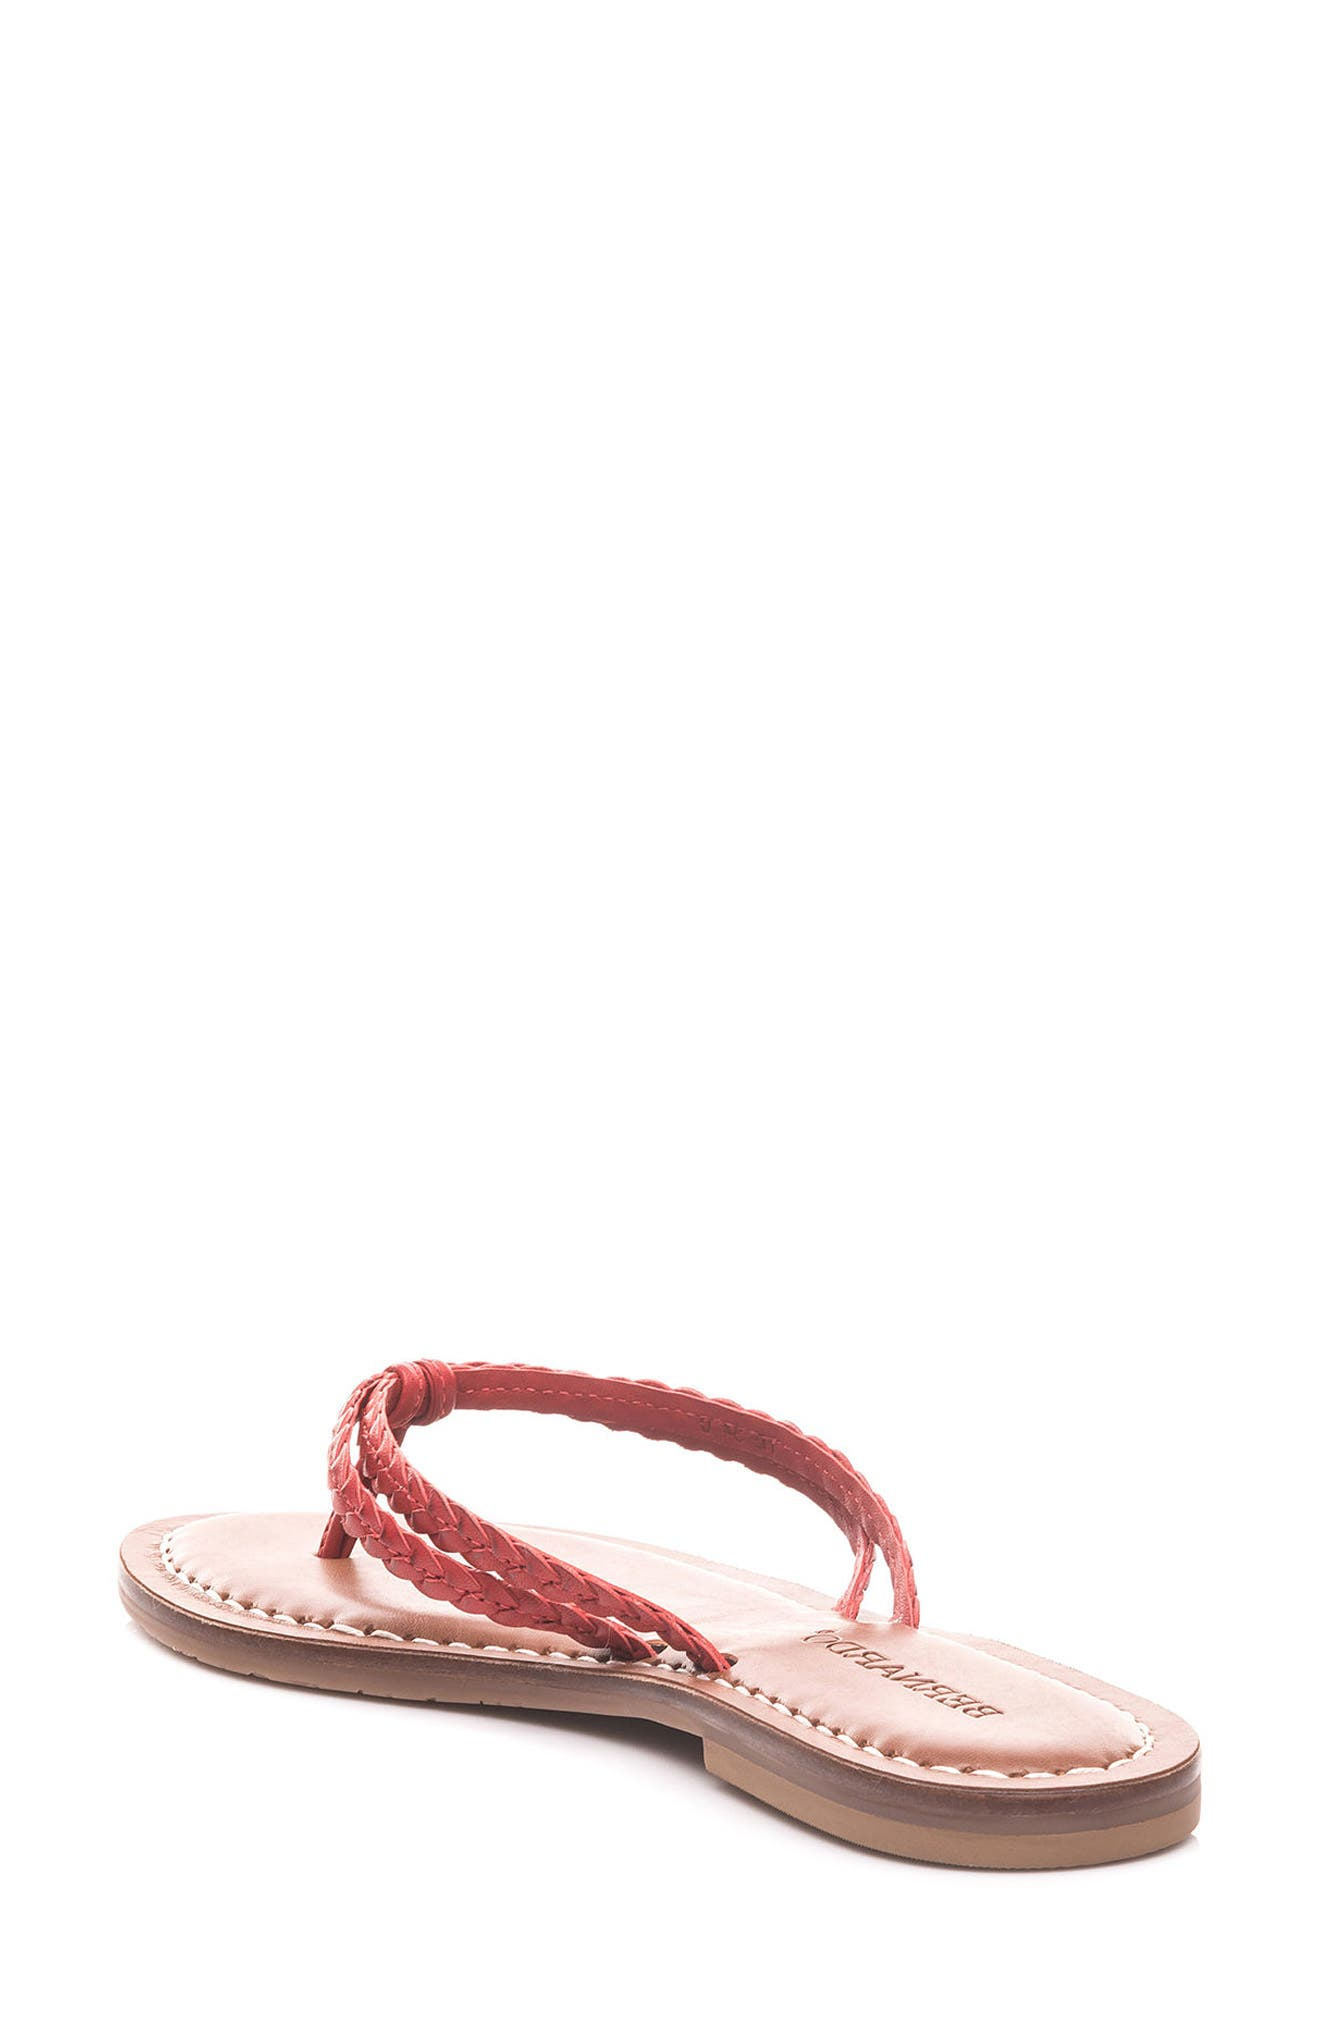 Bernardo Greta Braided Strap Sandal,                             Alternate thumbnail 11, color,